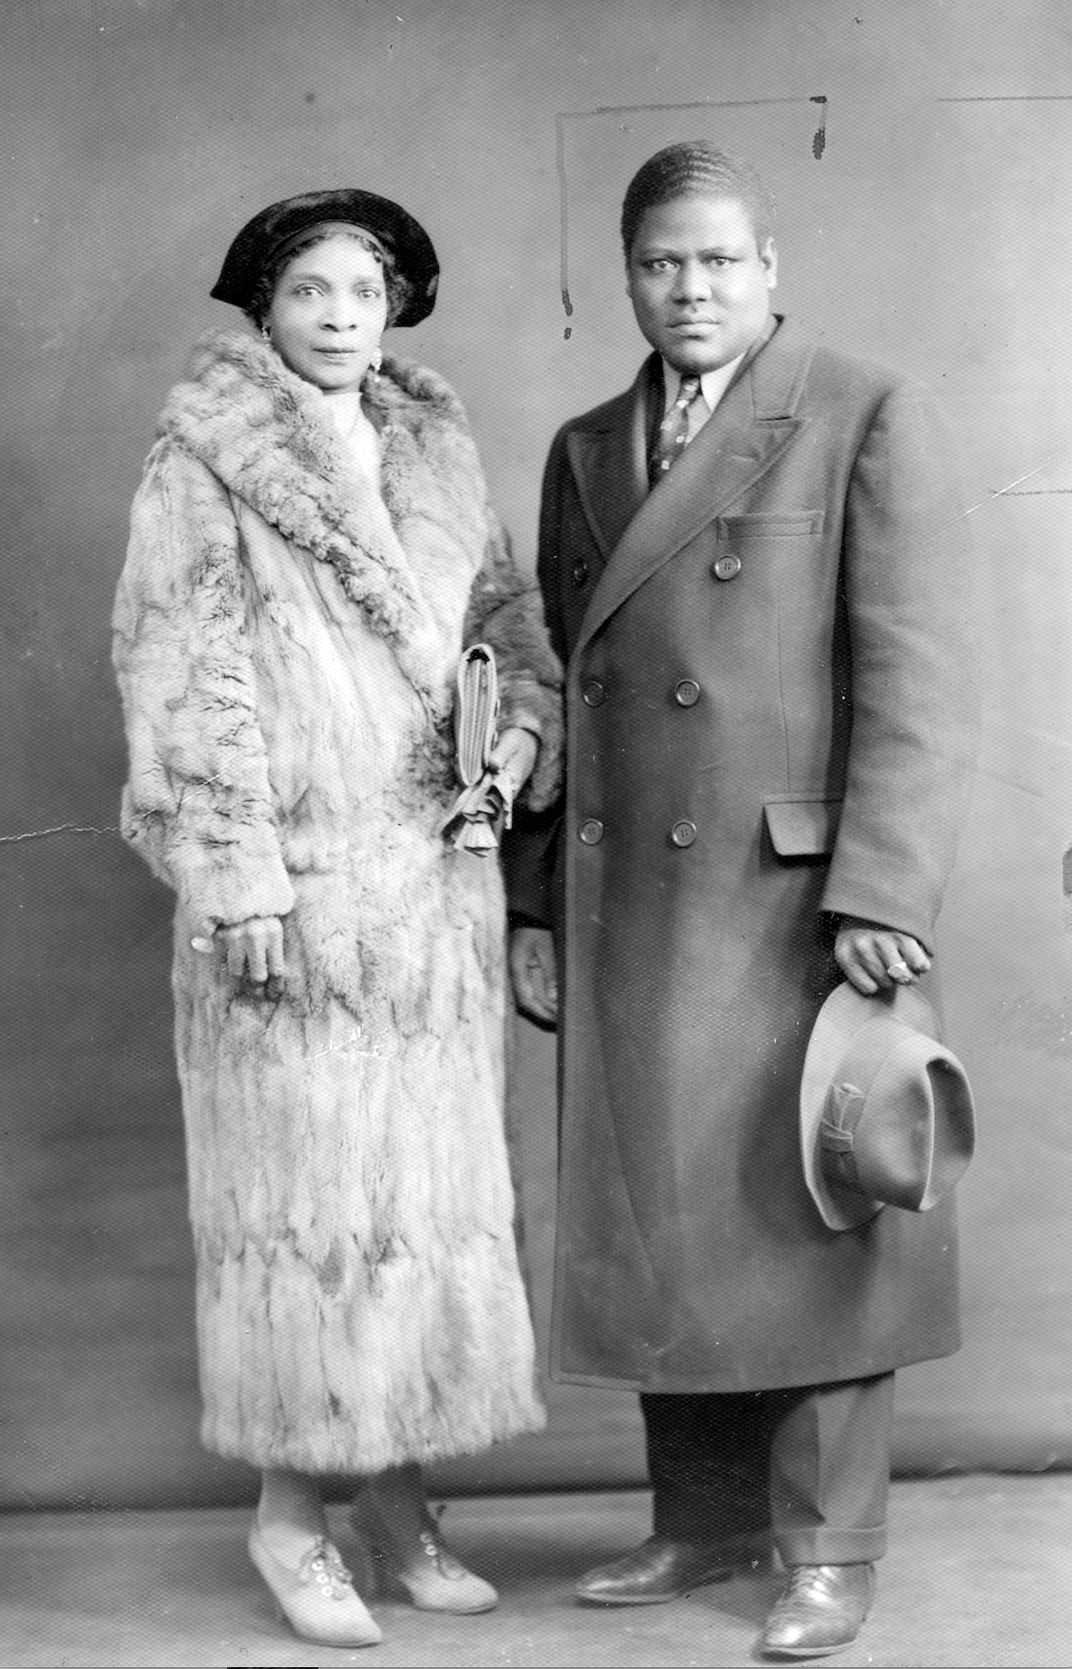 St. Clair (left) and Sufi Abdul Hamid (right) in January 1938